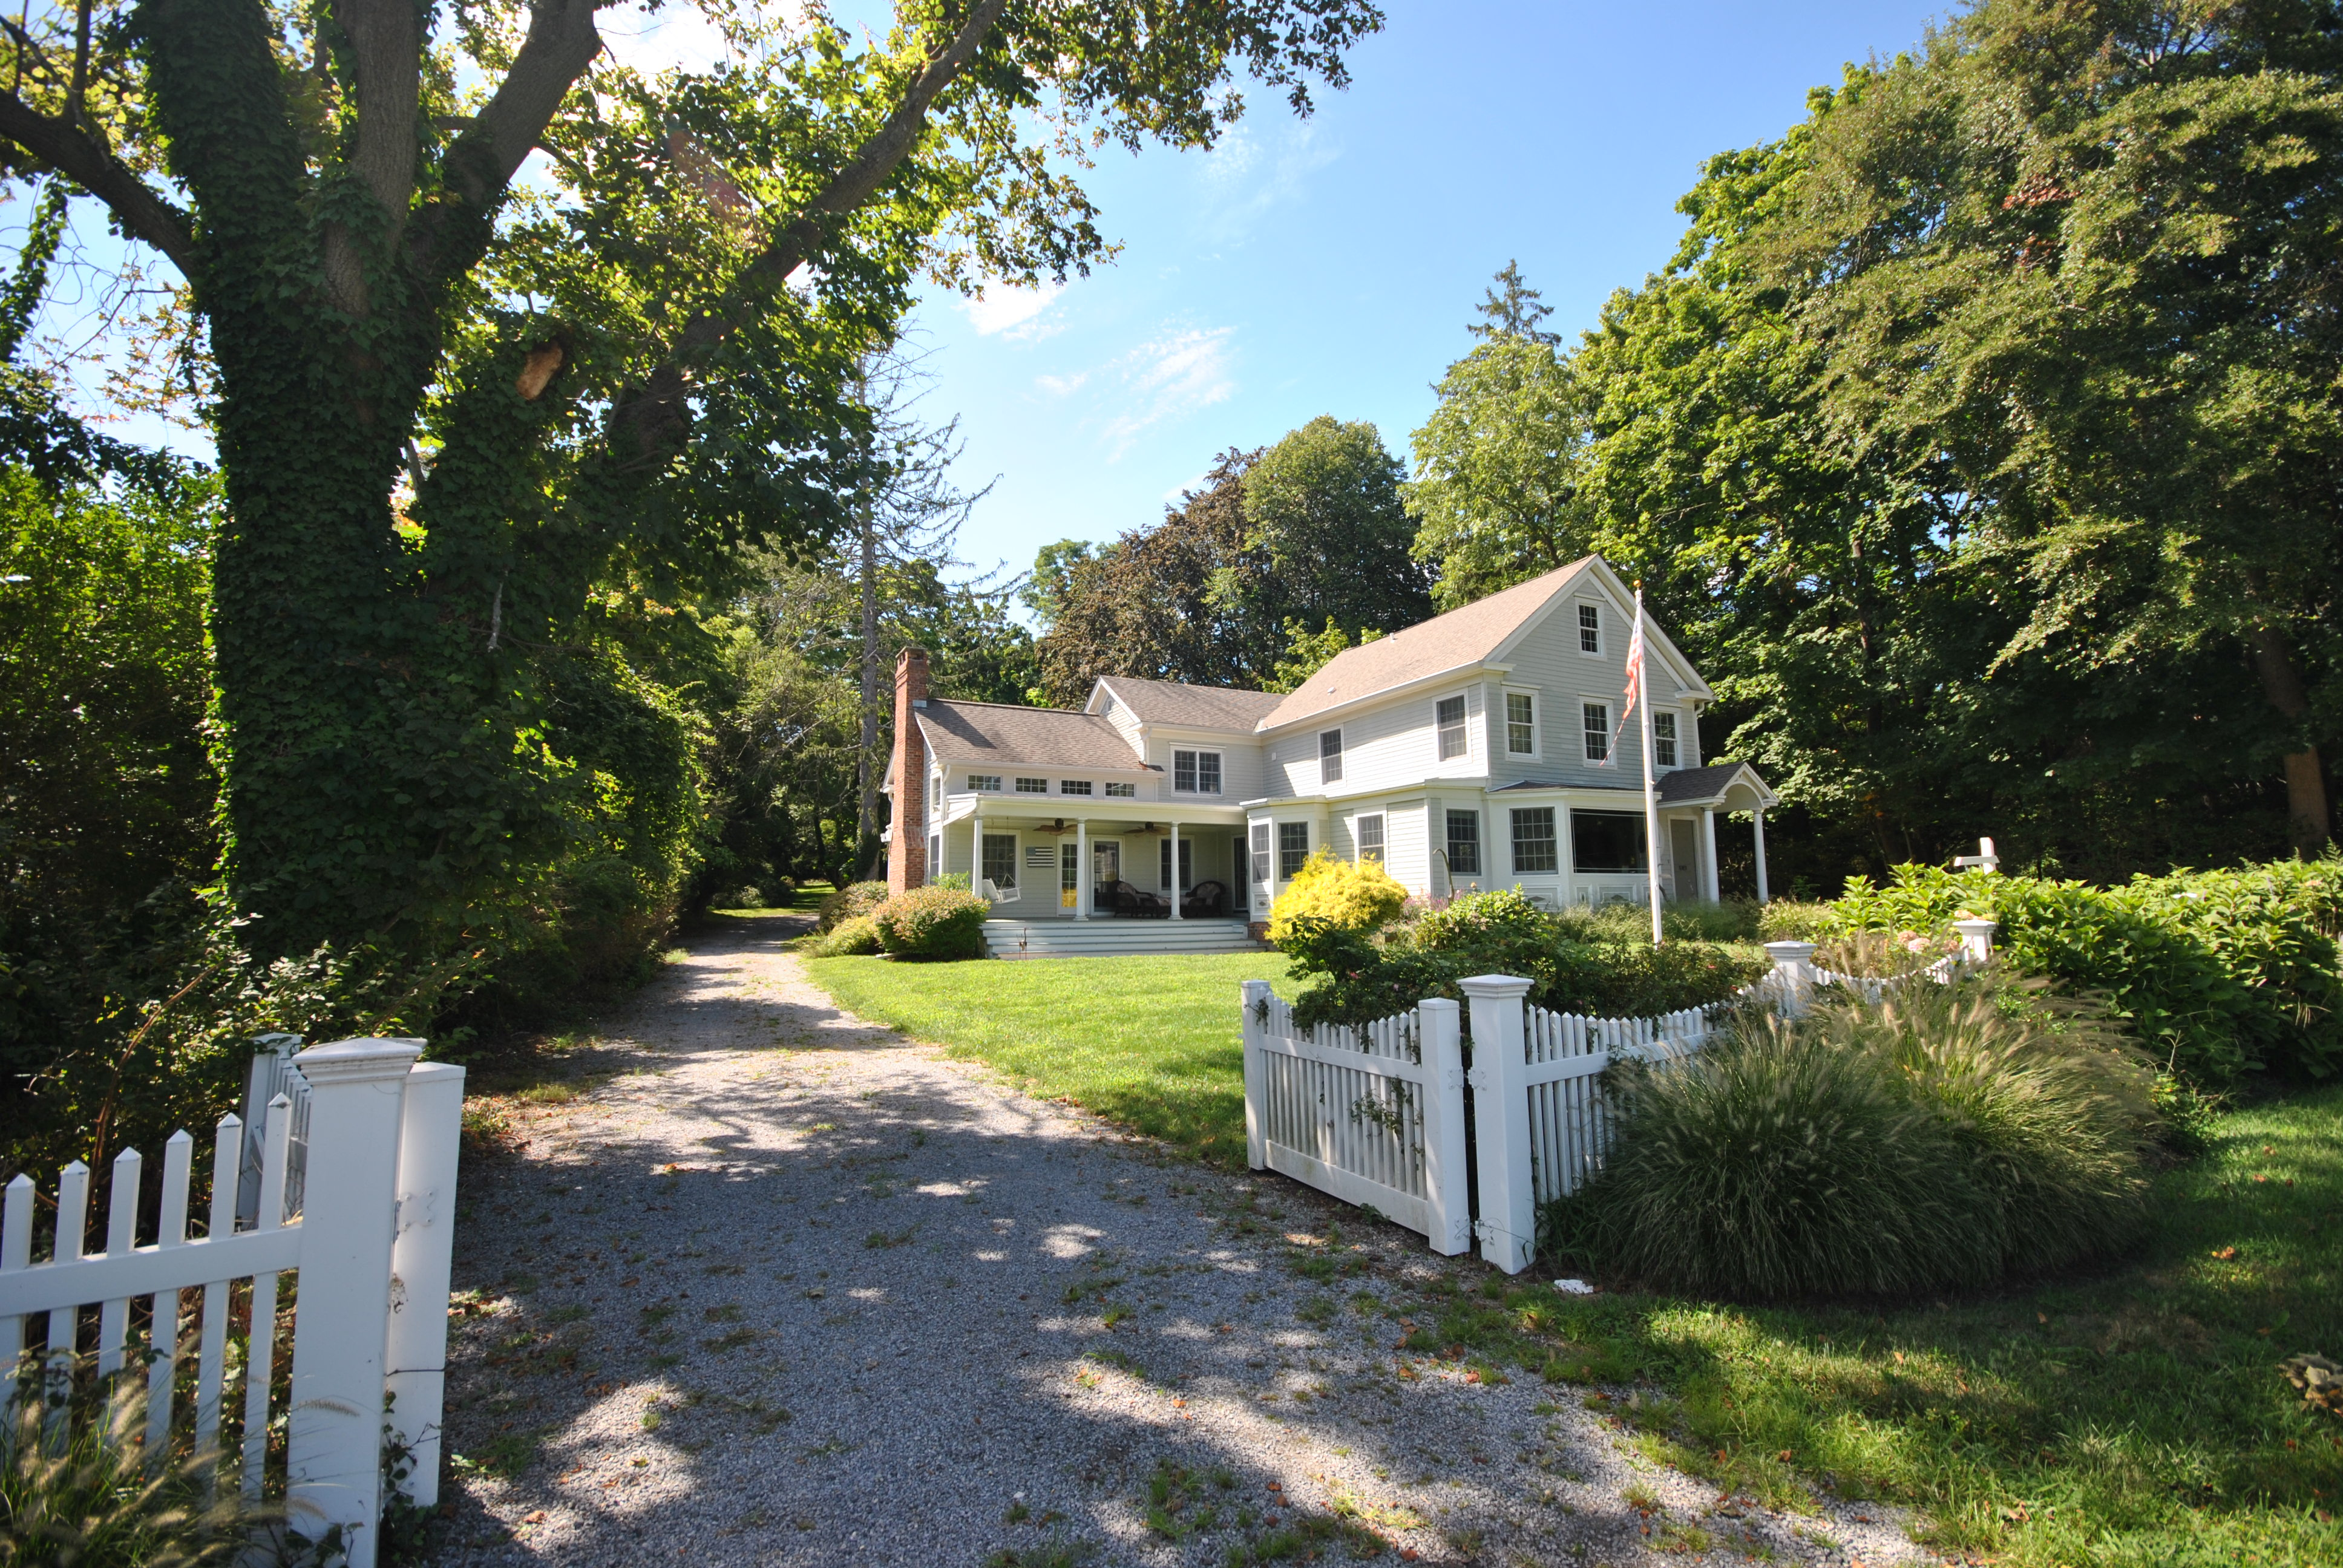 Single Family Home for Sale at Nantucket Style Home 96 Old Field Rd Old Field, New York, 11733 United States